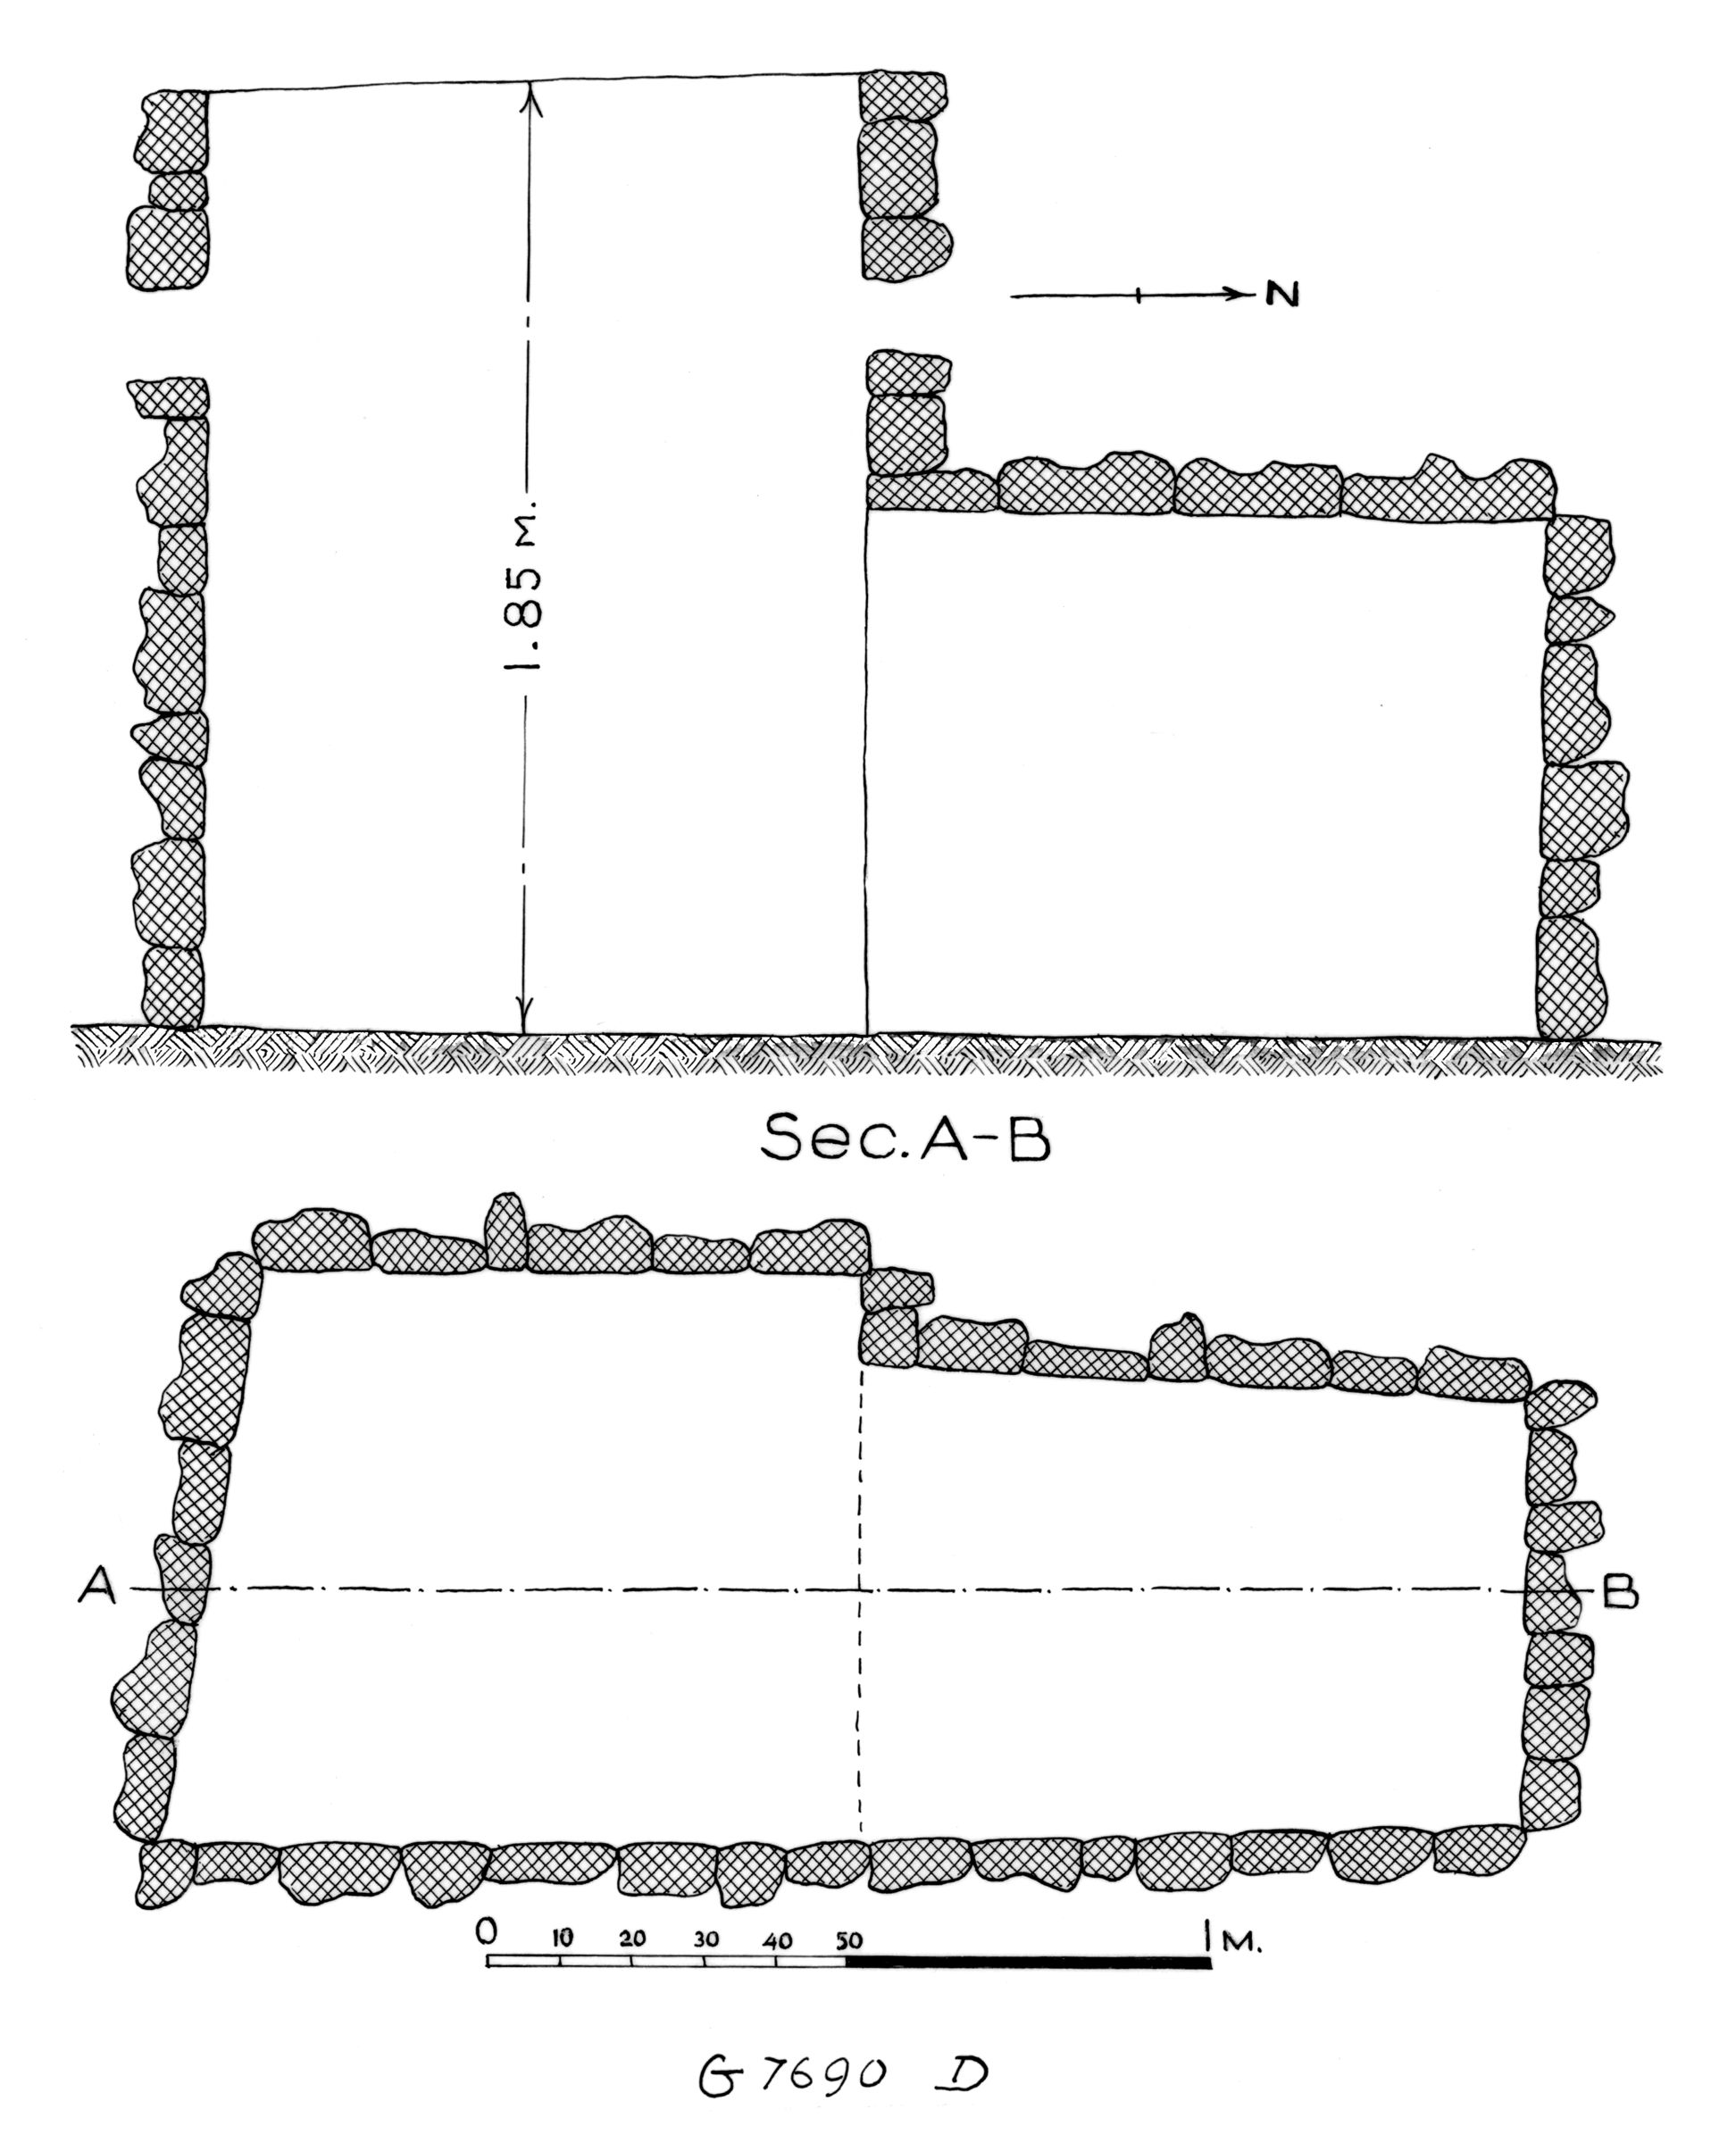 Maps and plans: G 7690, Shaft D